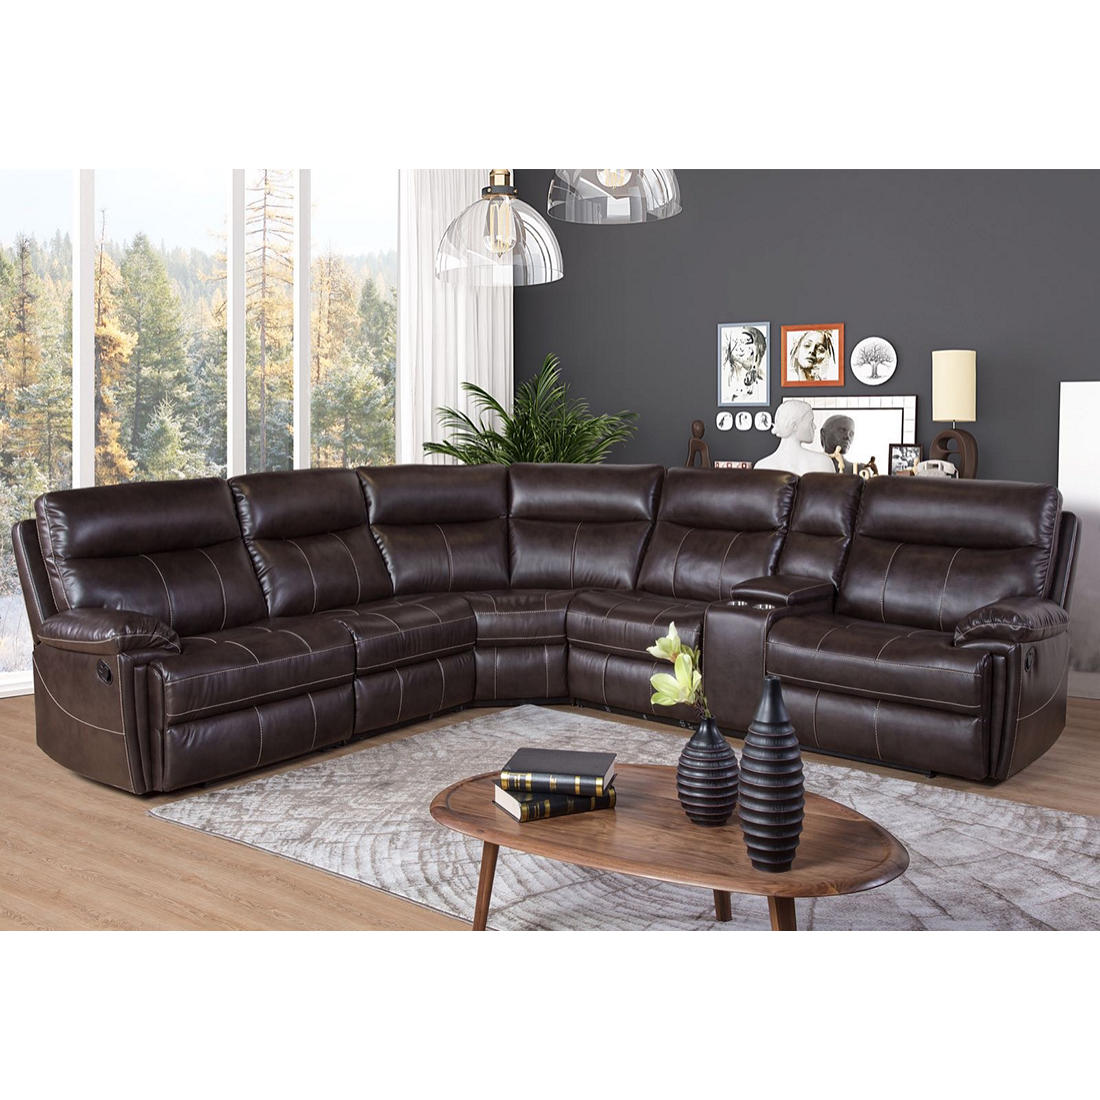 Wondrous Brandon 6 Pc Reclining Sectional With Free White Glove Delivery Caraccident5 Cool Chair Designs And Ideas Caraccident5Info